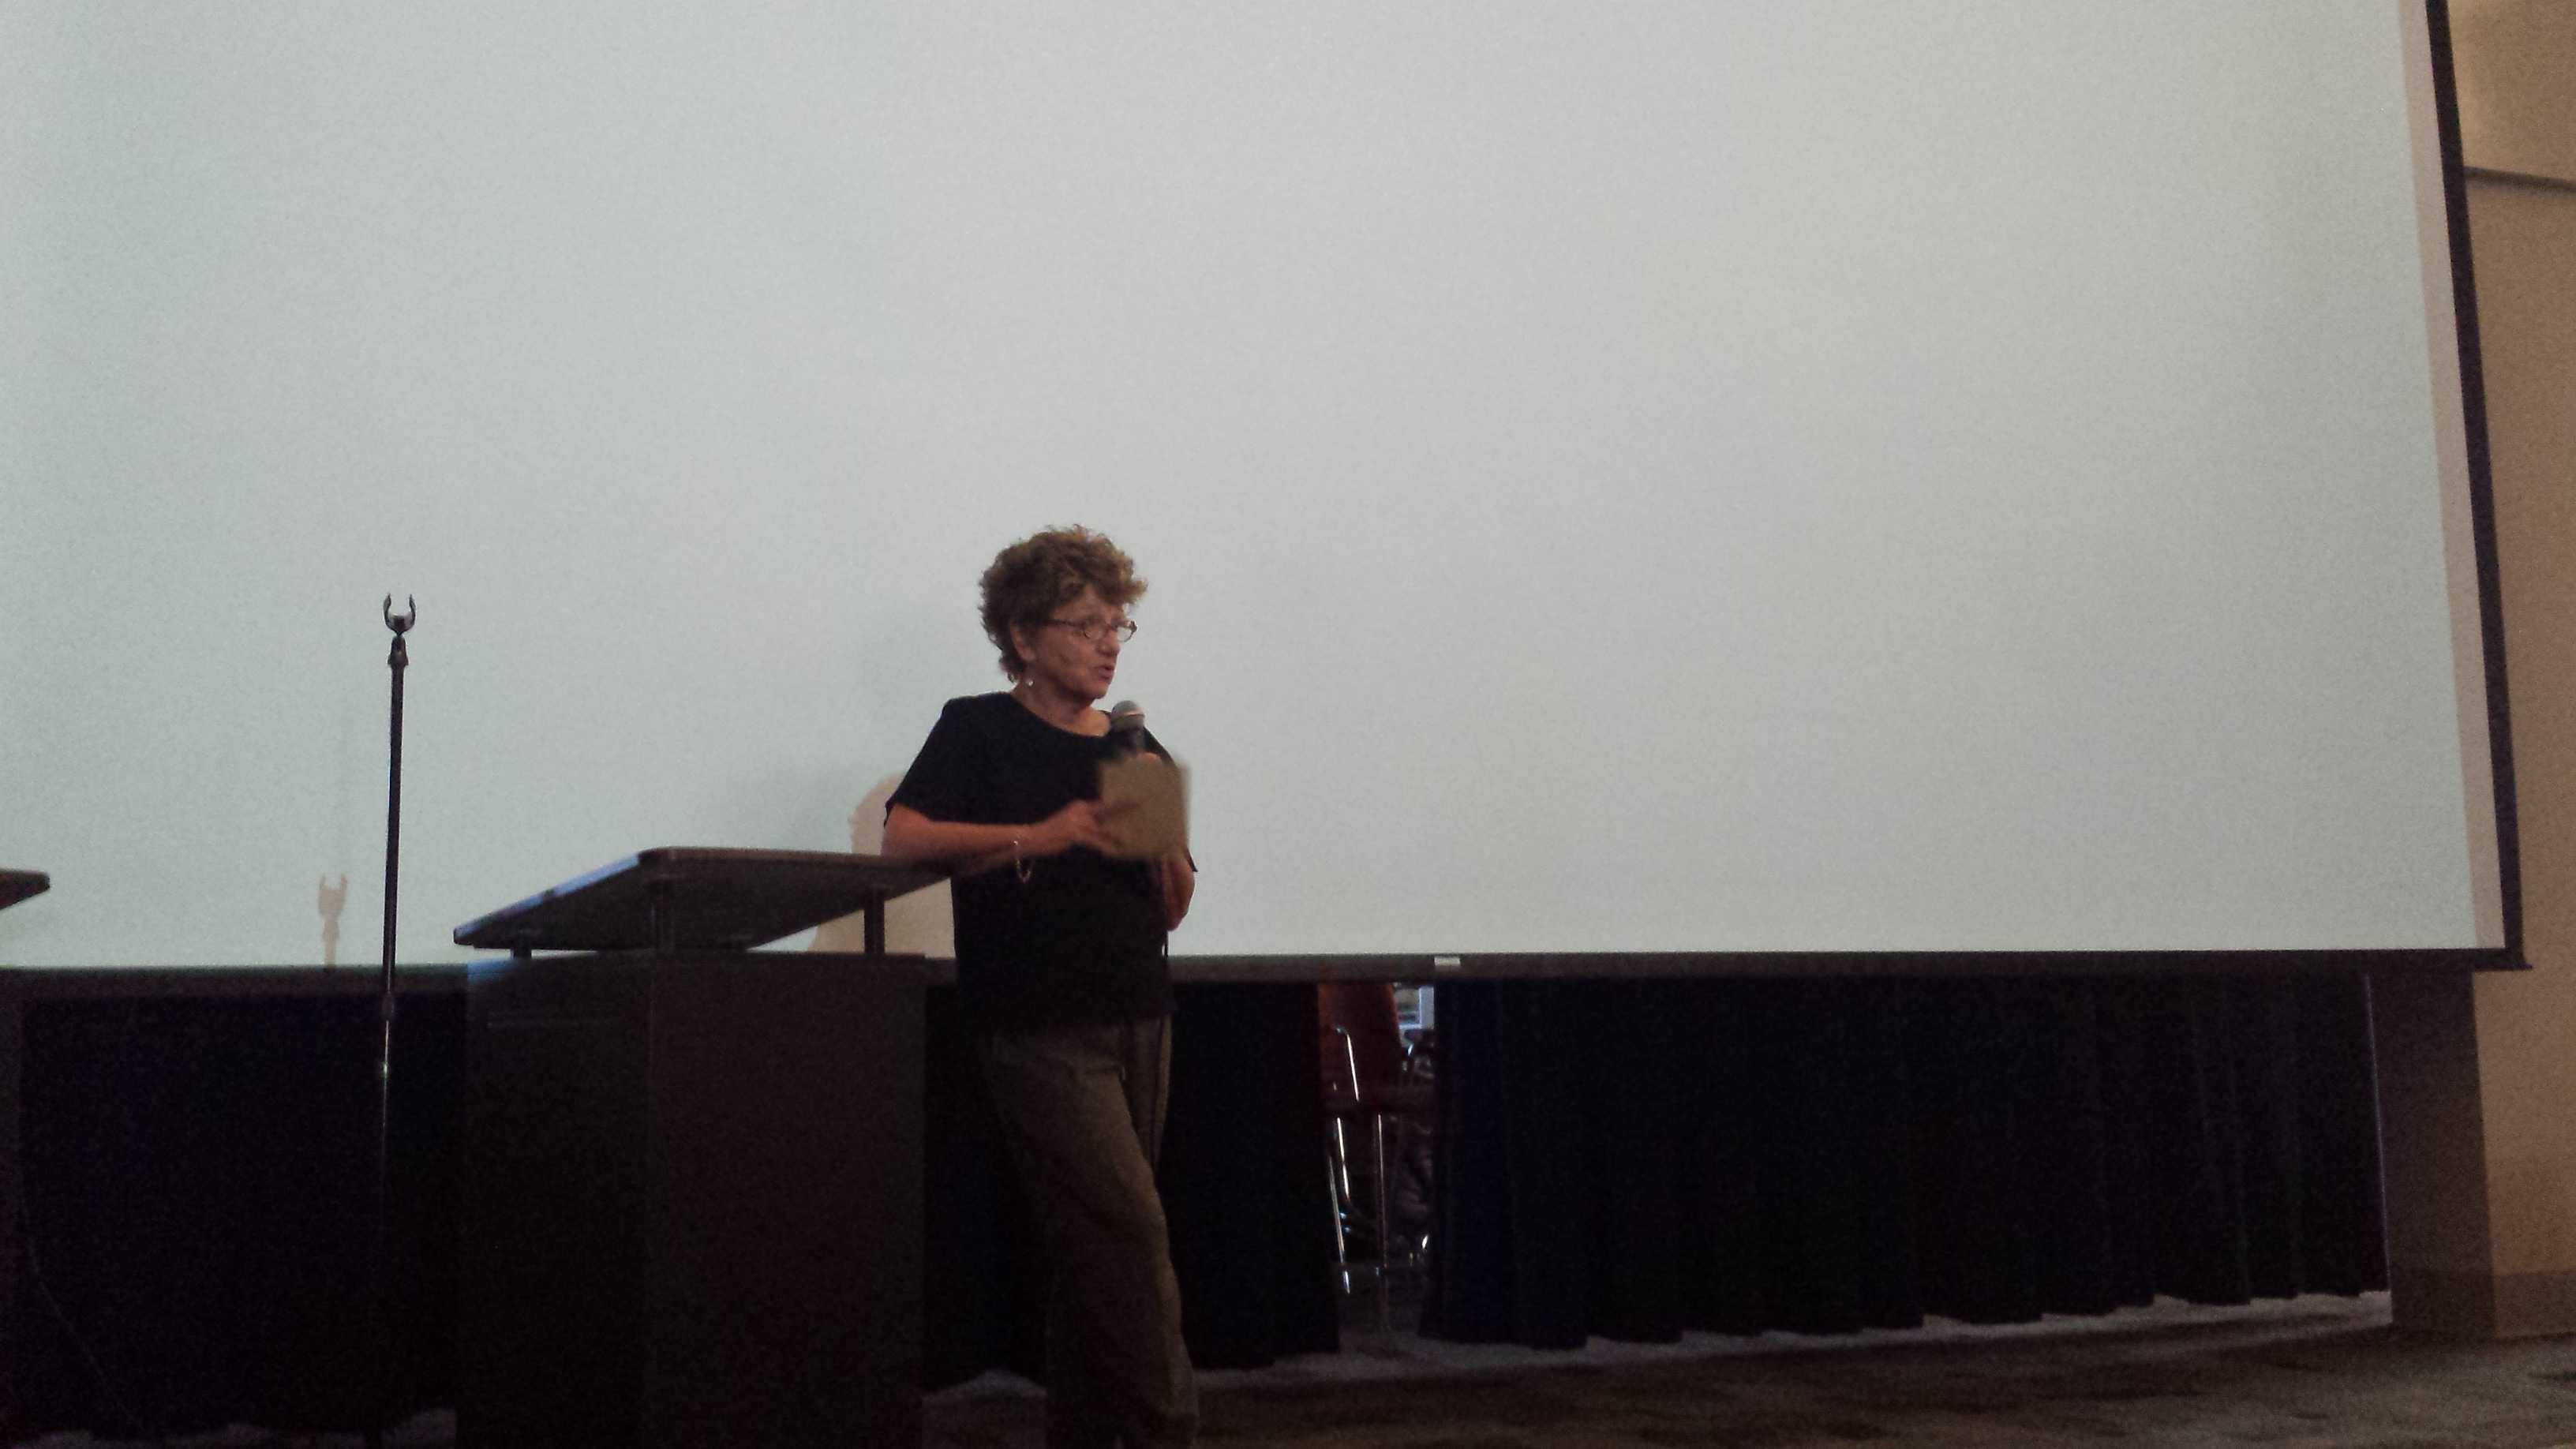 Moritz speaks about the making of